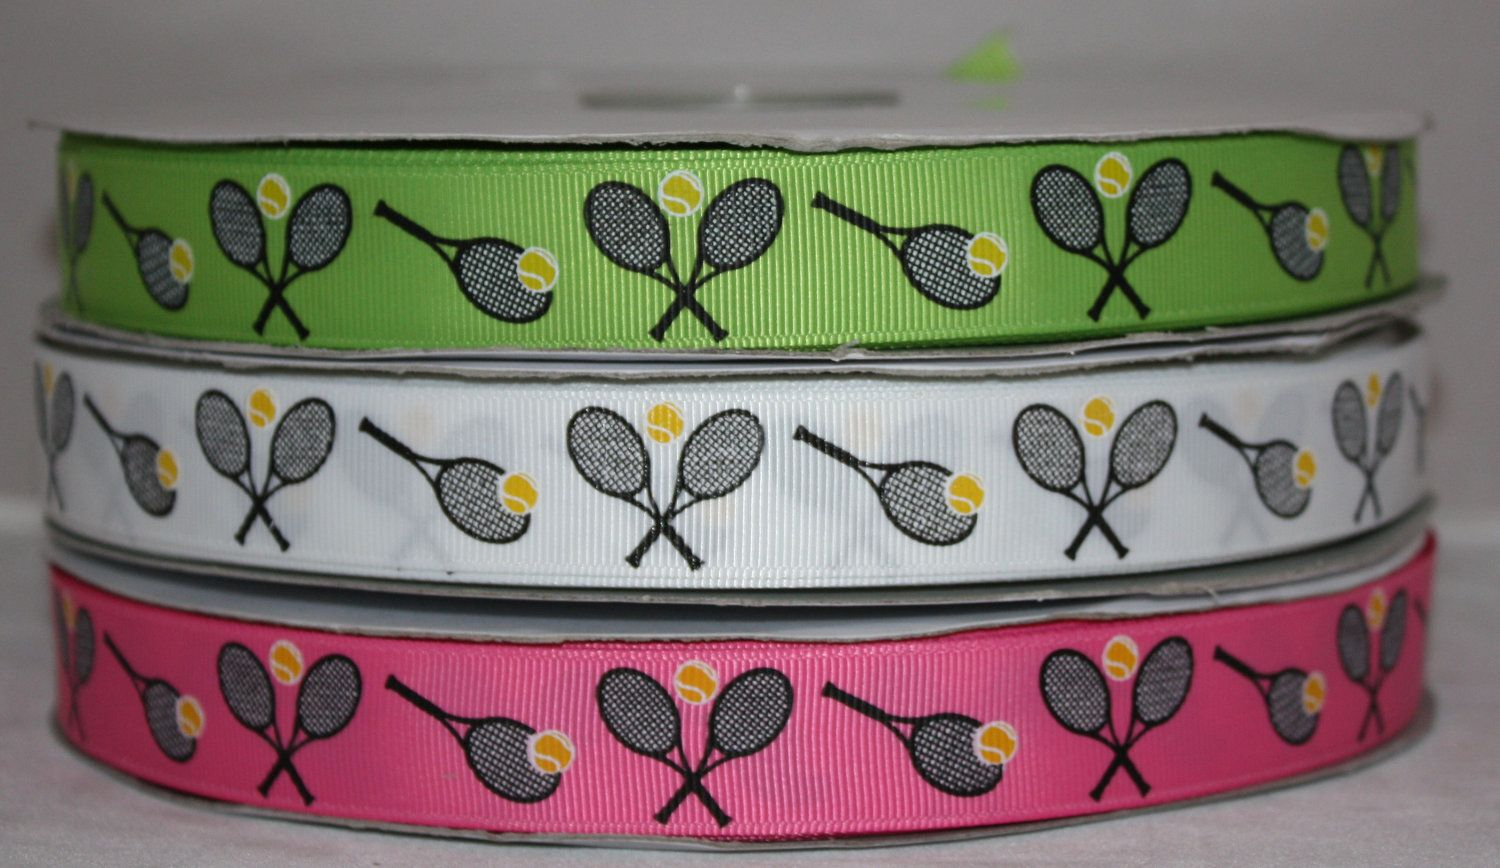 Tennis Sports Team Racket Ball Grosgrain Ribbon for Hairbows 3 yards. $4.00, via Etsy.